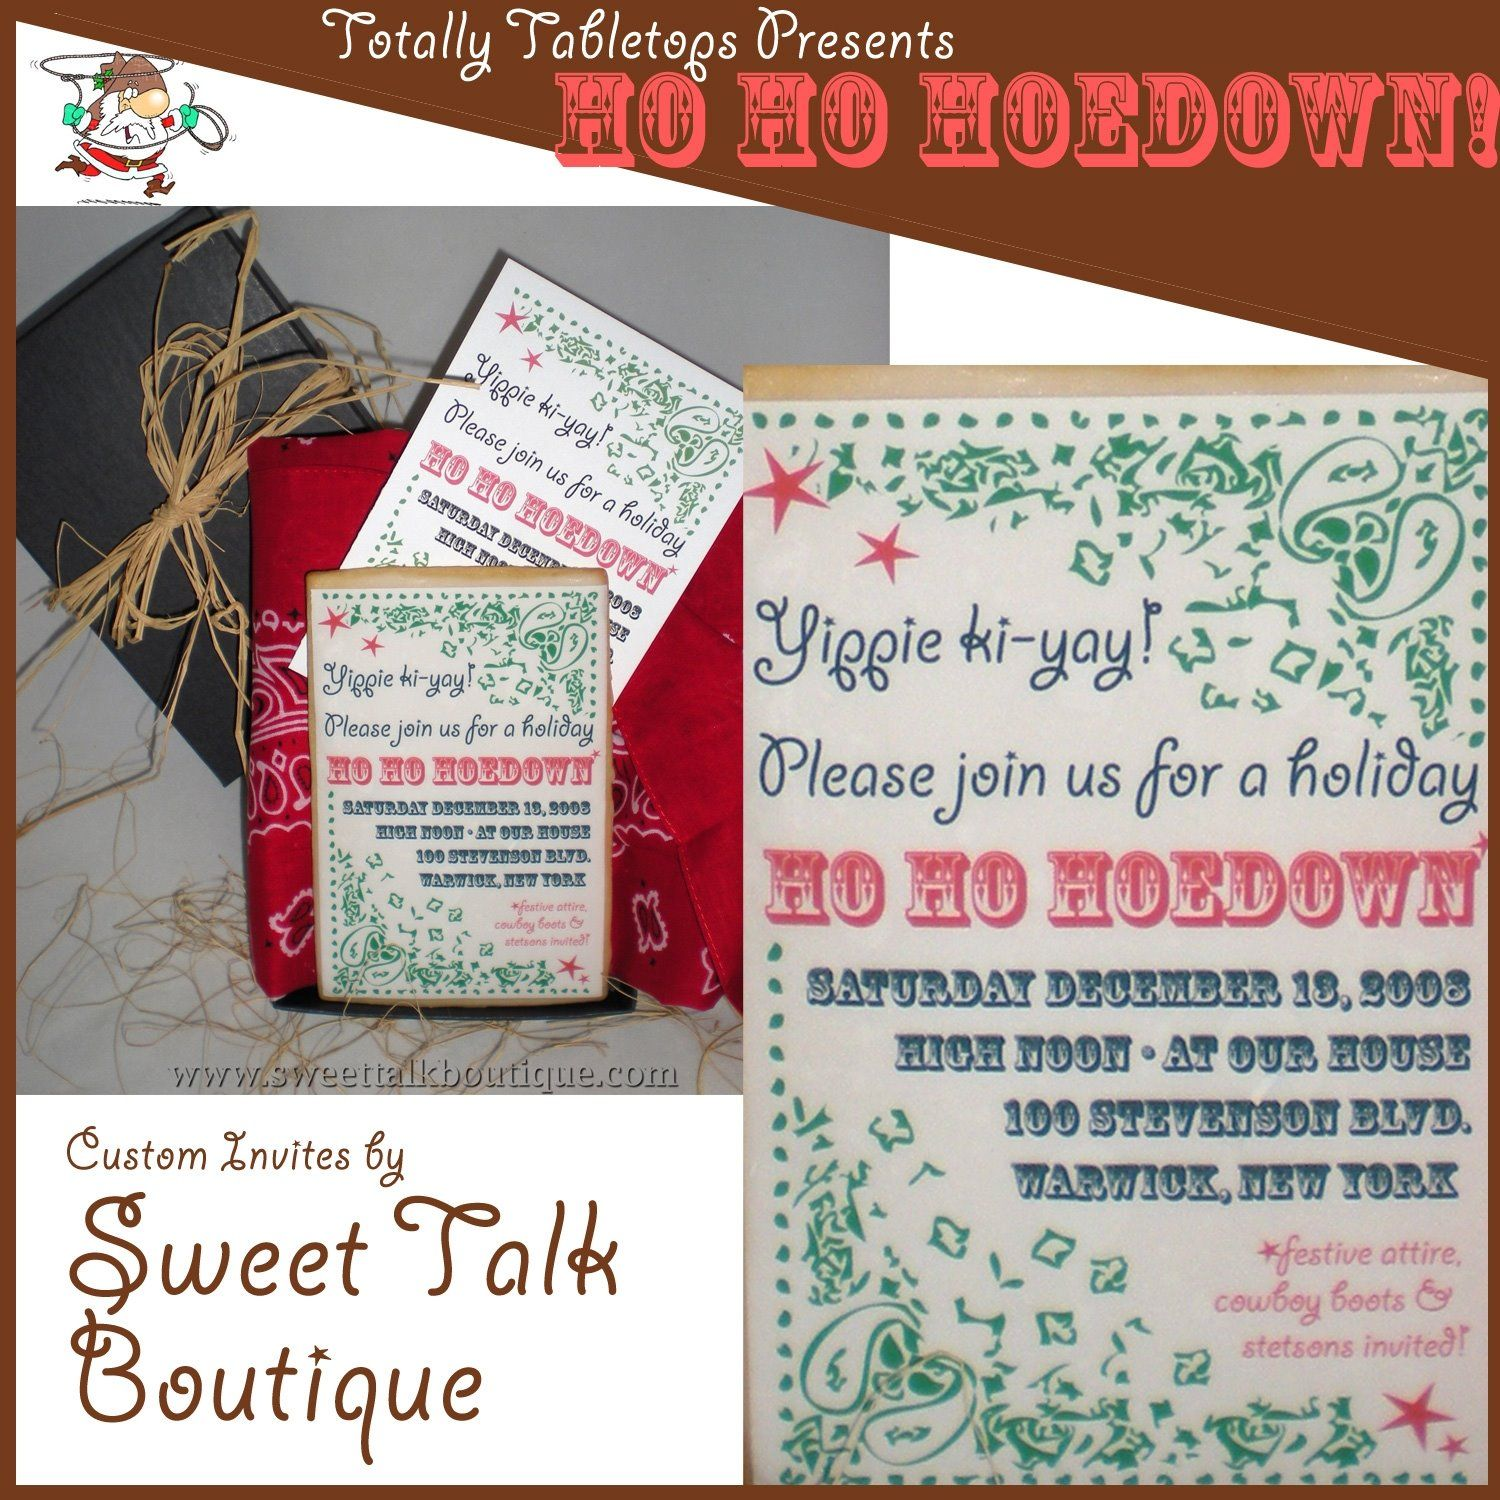 Ho Ho Hoedown invite | Ho Ho Hodown | Pinterest | Party time